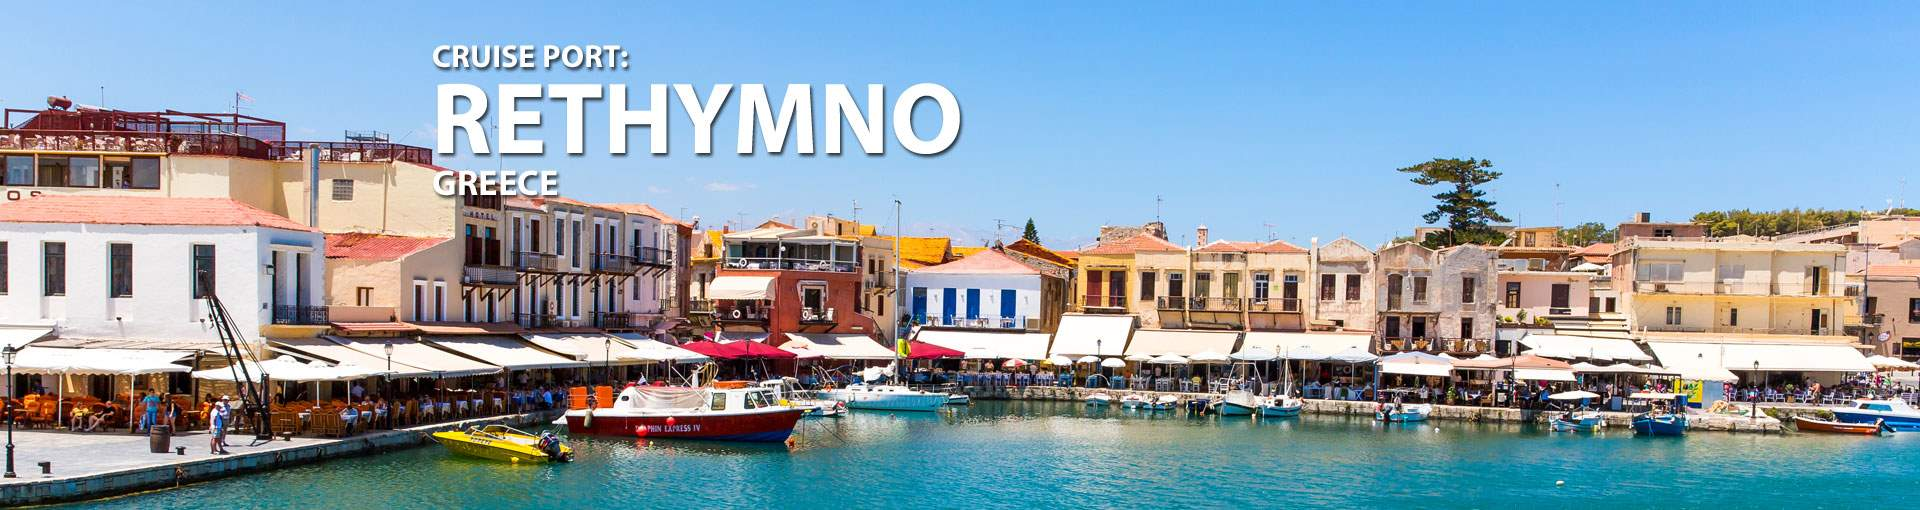 Cruises to Rethymno, Greece